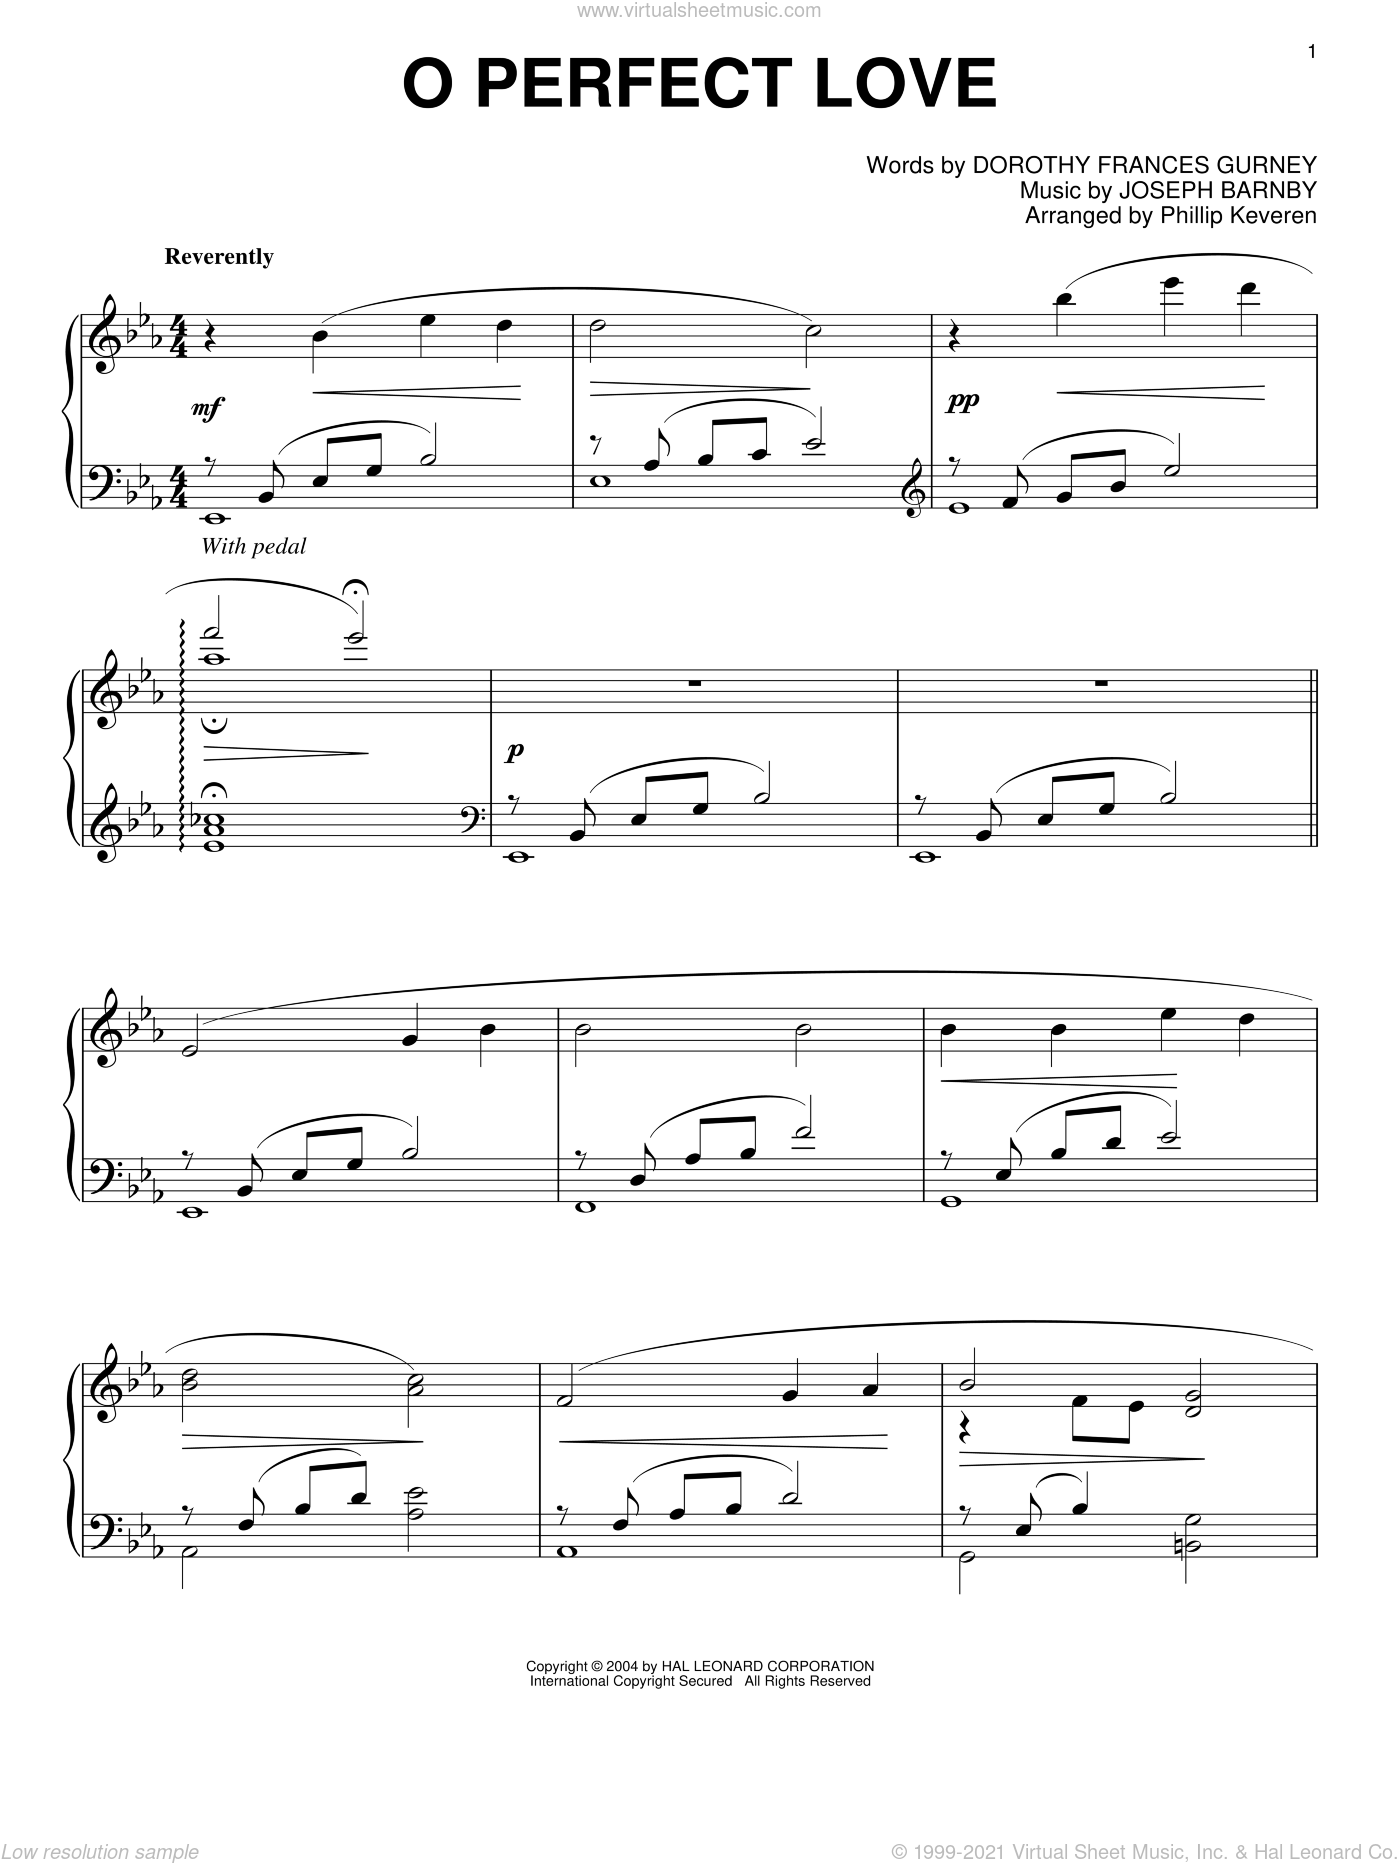 O Perfect Love sheet music for piano solo by Dorothy Frances Gurney